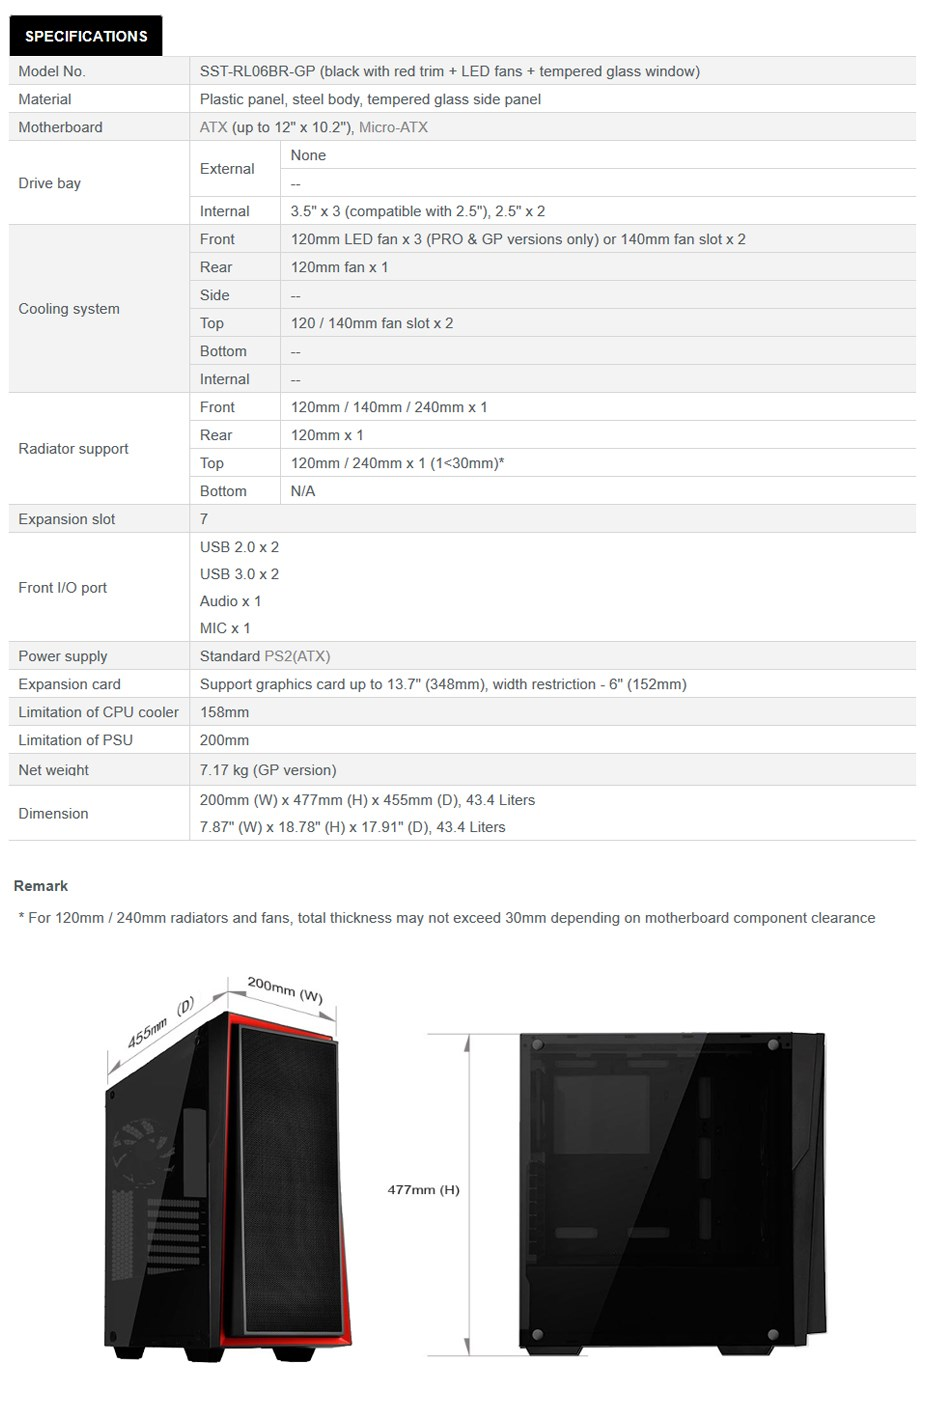 SilverStone Redline RL06 Pro Tempered Glass Mid-Tower ATX Case - Black/Red - Desktop Overview 1